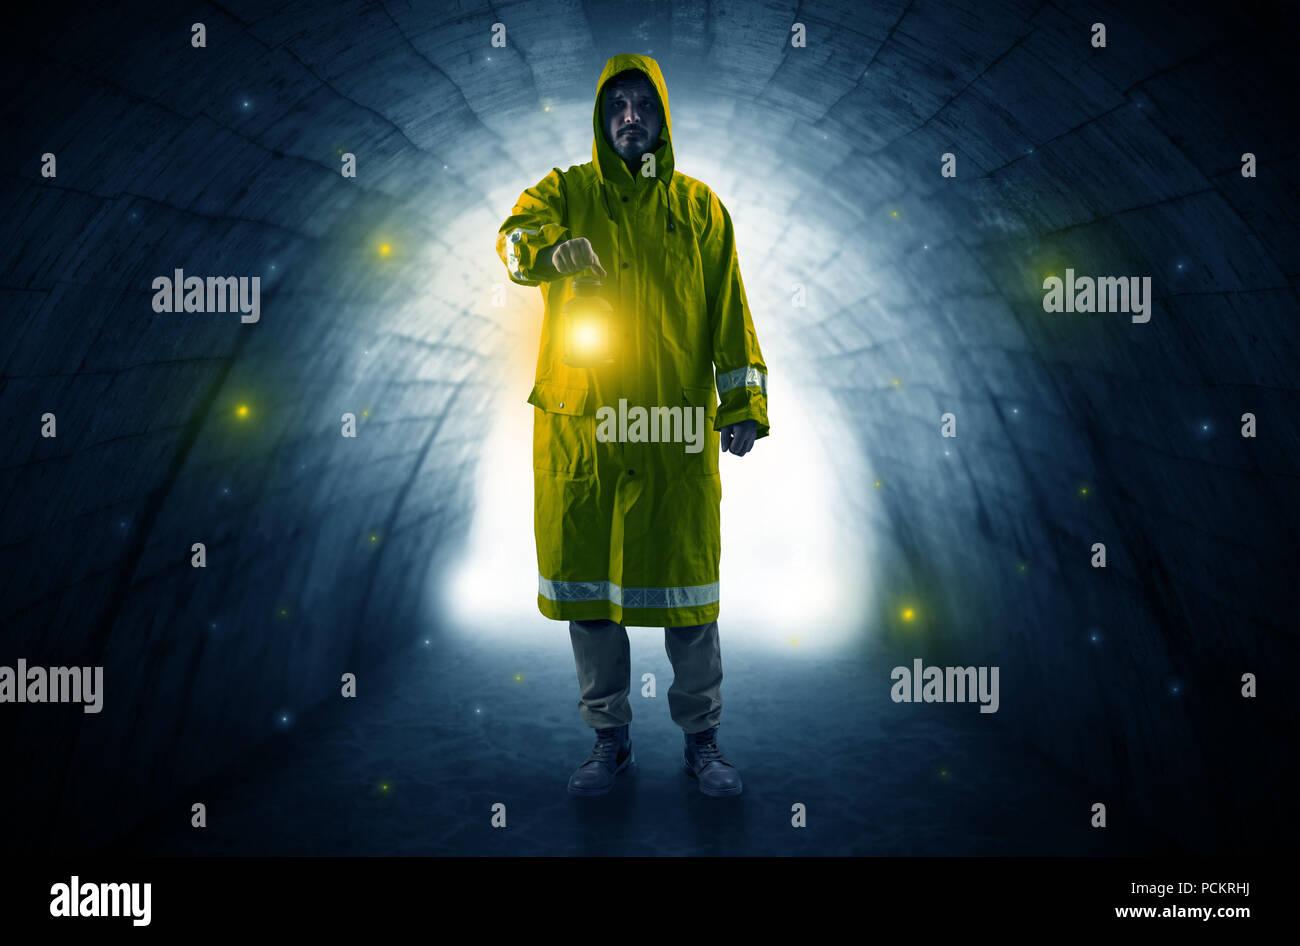 Glowing Firefly Stock Photos & Glowing Firefly Stock Images - Alamy